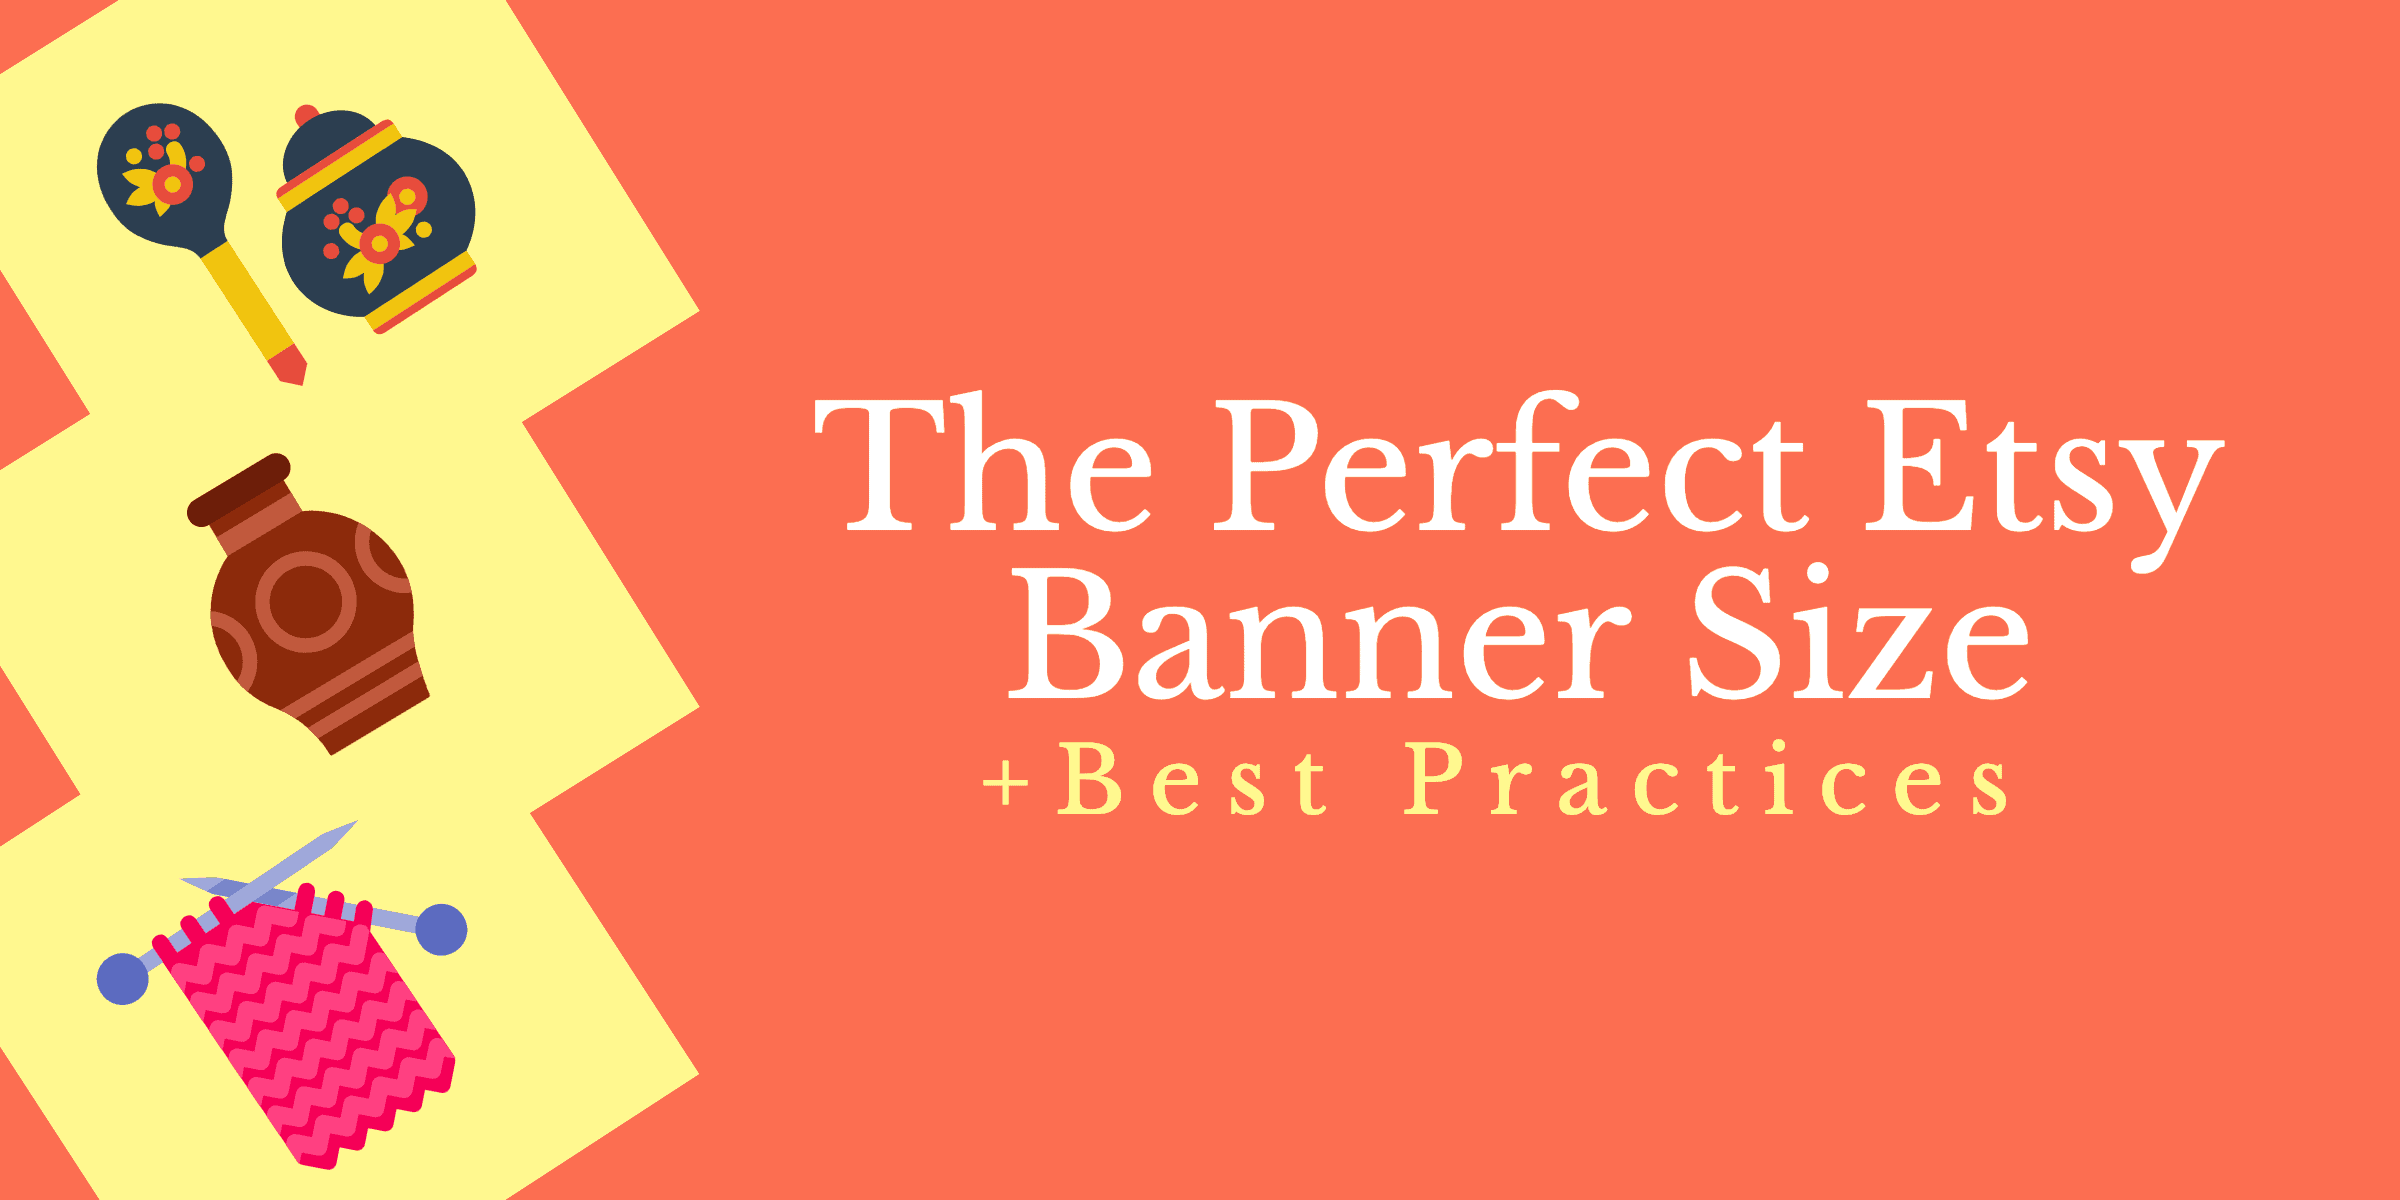 etsy banner dimensions & best practices